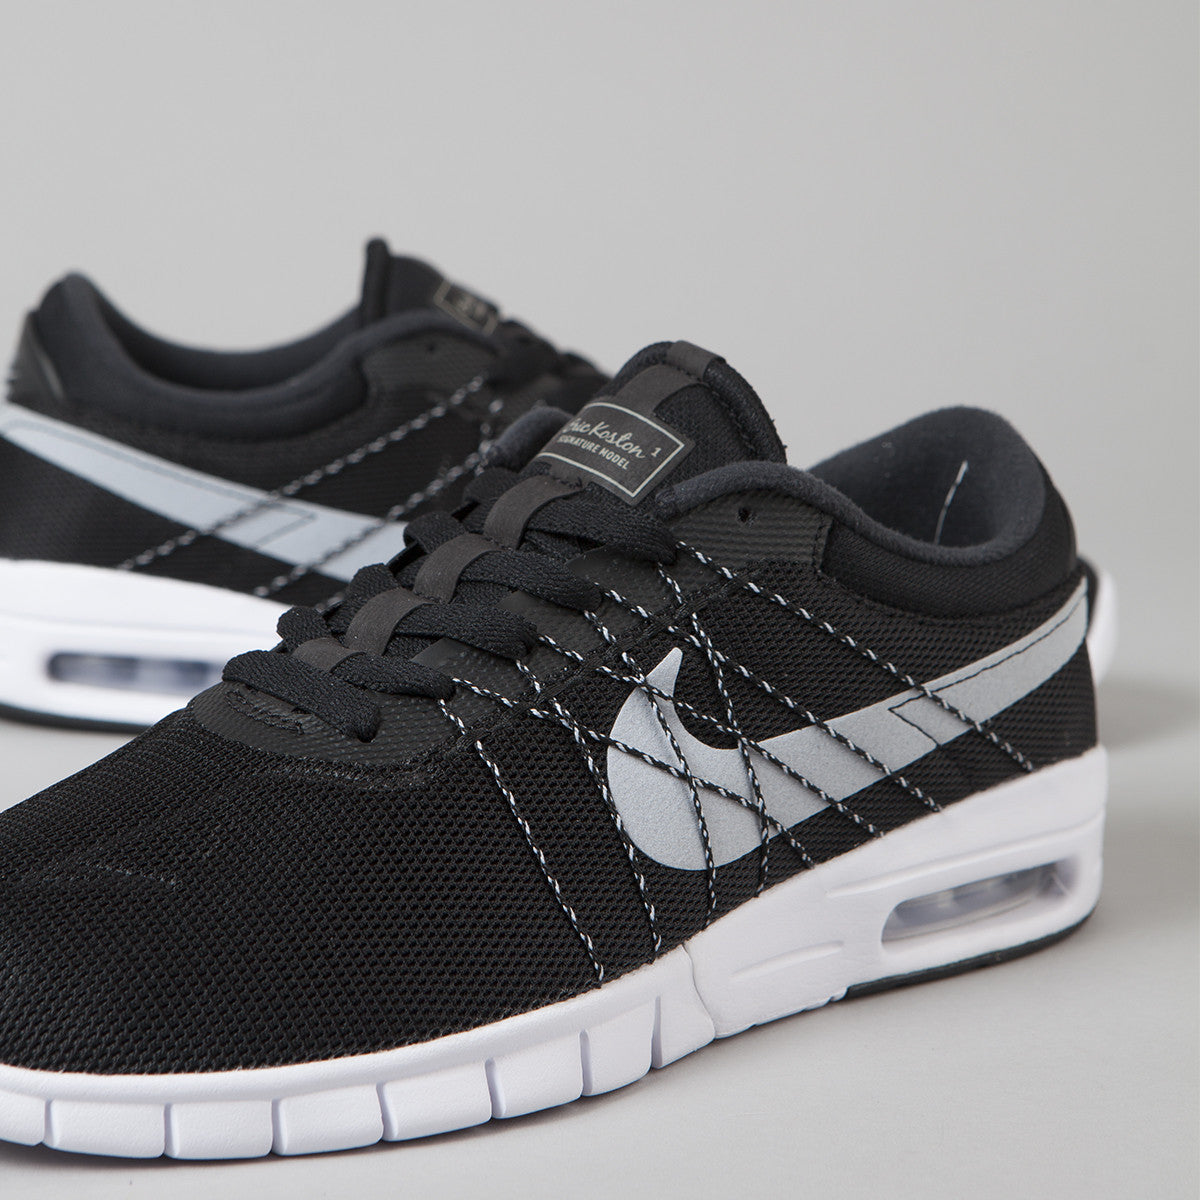 nike sb koston max shoes black wolf grey white. Black Bedroom Furniture Sets. Home Design Ideas